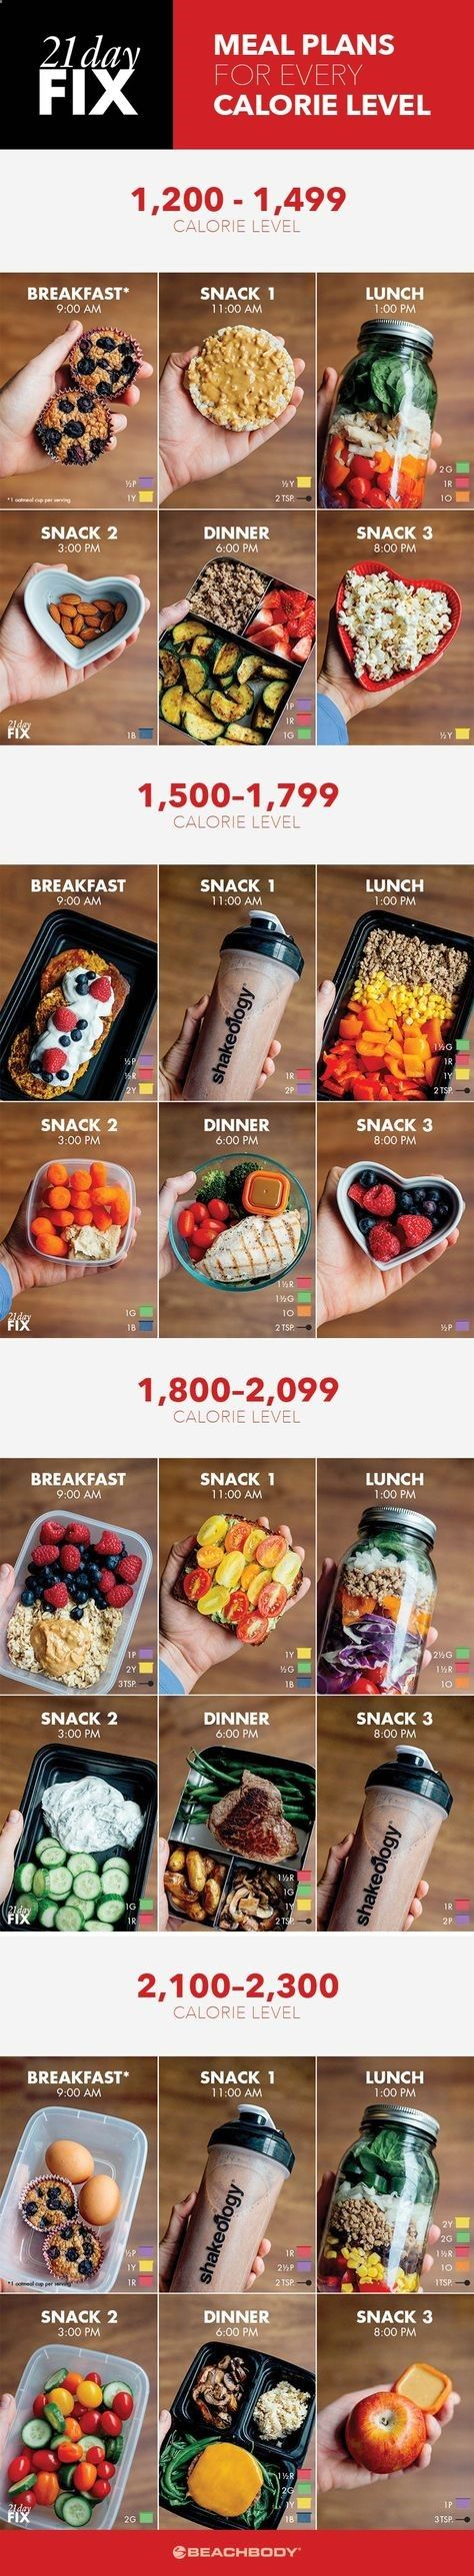 Eat Stop Eat To Loss Weight - If you're on the 21 Day Fix meal plan, check out these quick and easy meal prep ideas for every calorie level. meal planning // meal prep // Autumn Calabrese // Beachbody Programs // healthy snacks // Shakeology // salad jars // 21 Day Fix // healthy eating// Beachbody // Beachbody Blog // - In Just One Day This Simple Strategy Frees You From Complicated Diet Rules - And Eliminates Rebound Weight Gain